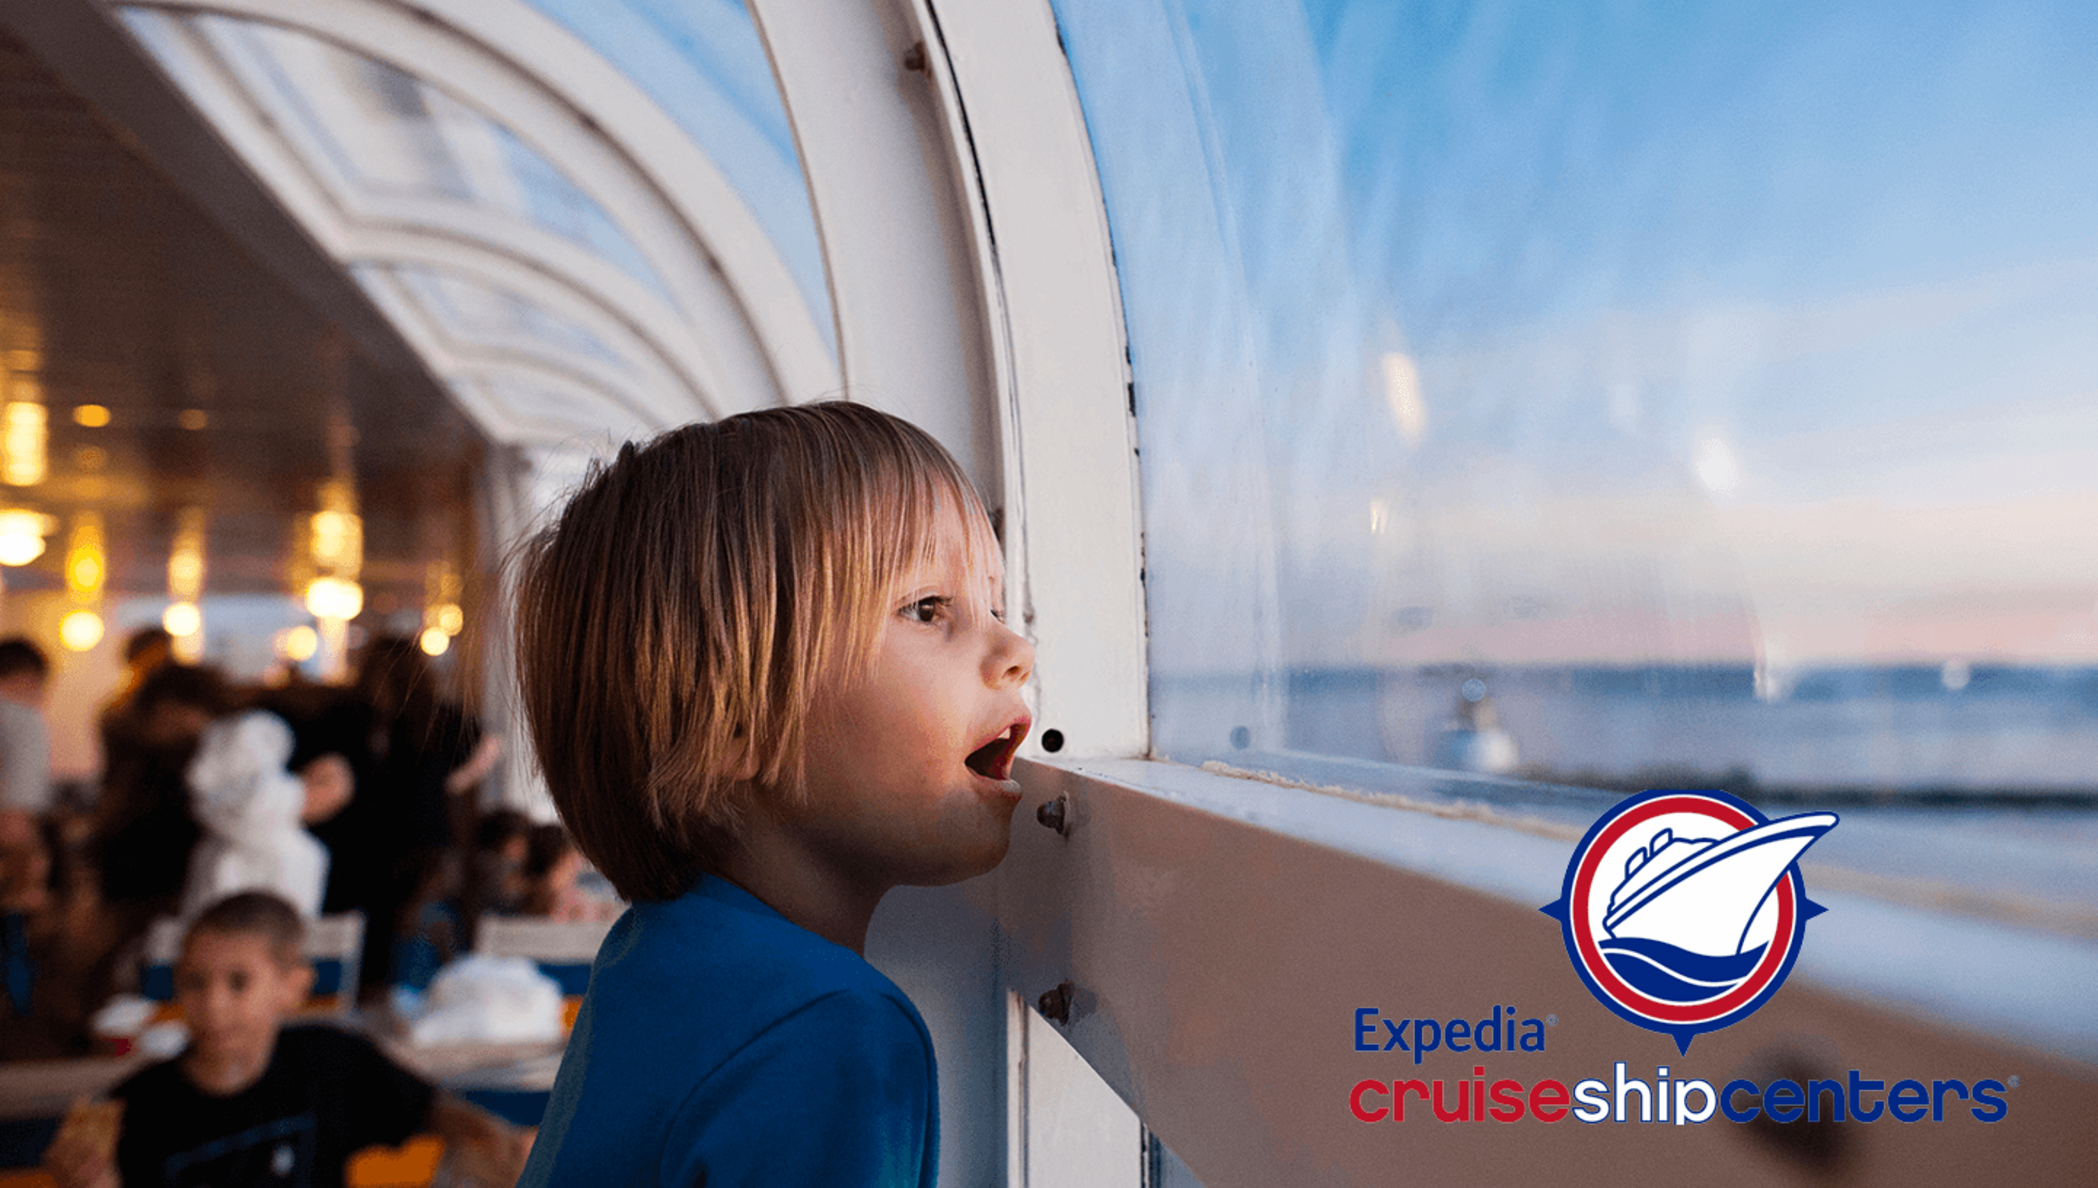 A little boy looking out a cruise ship window in awe at the landscape, mouth agape.